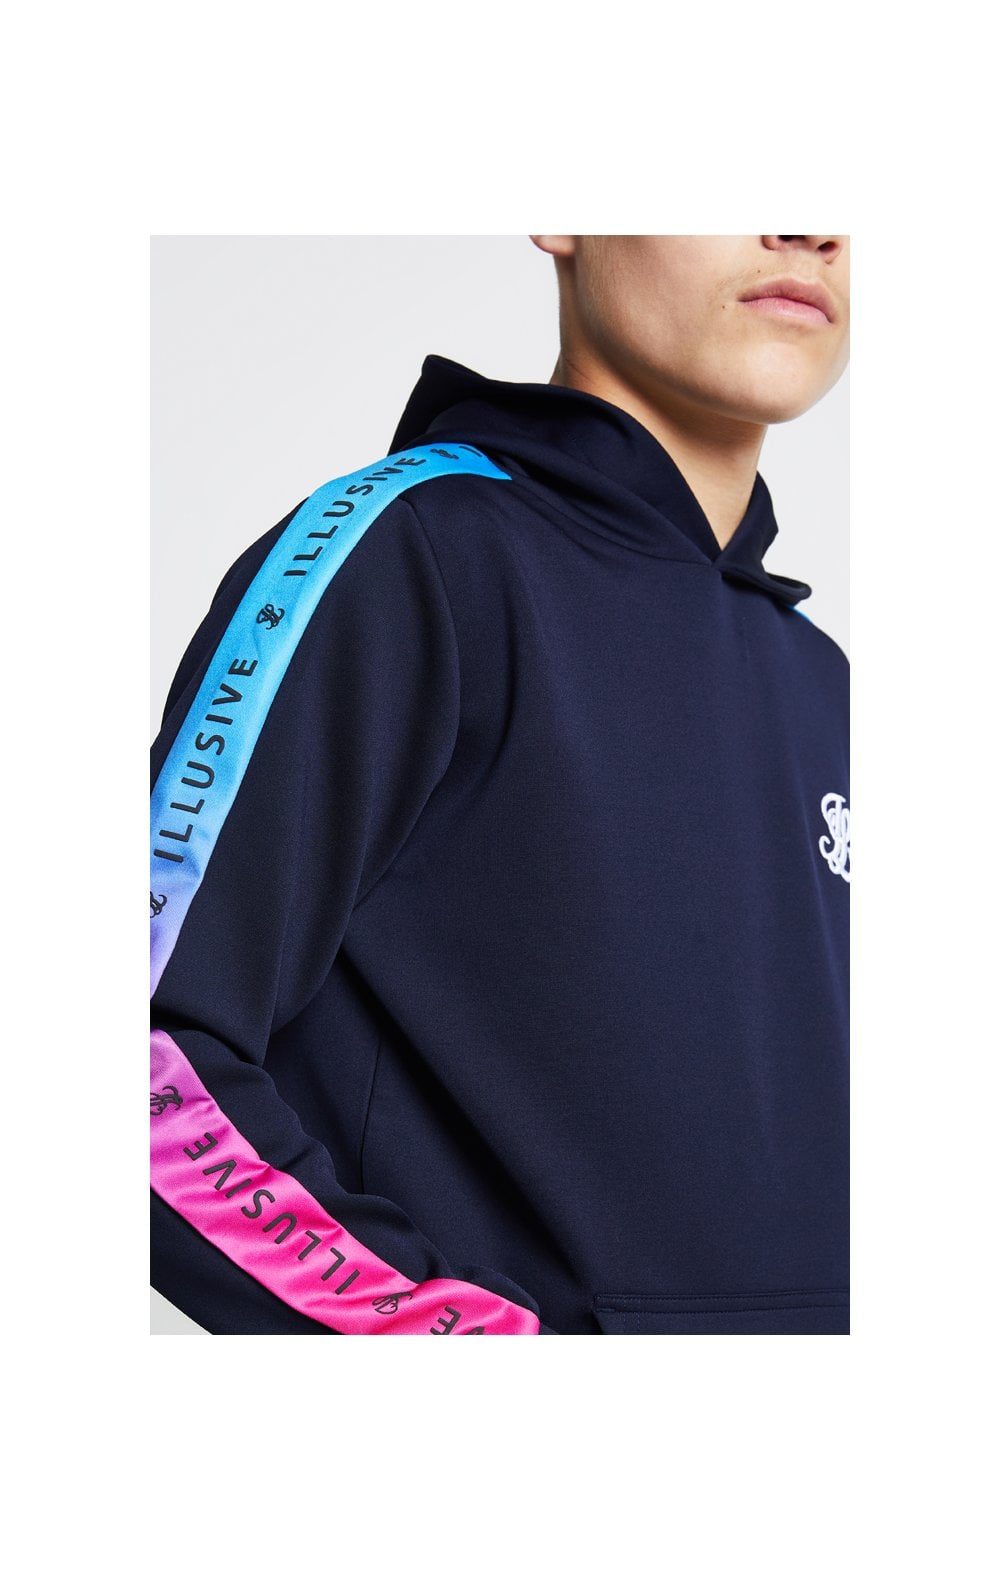 Illusive London Fade Panel Overhead Hoodie - Navy Blue & Pink